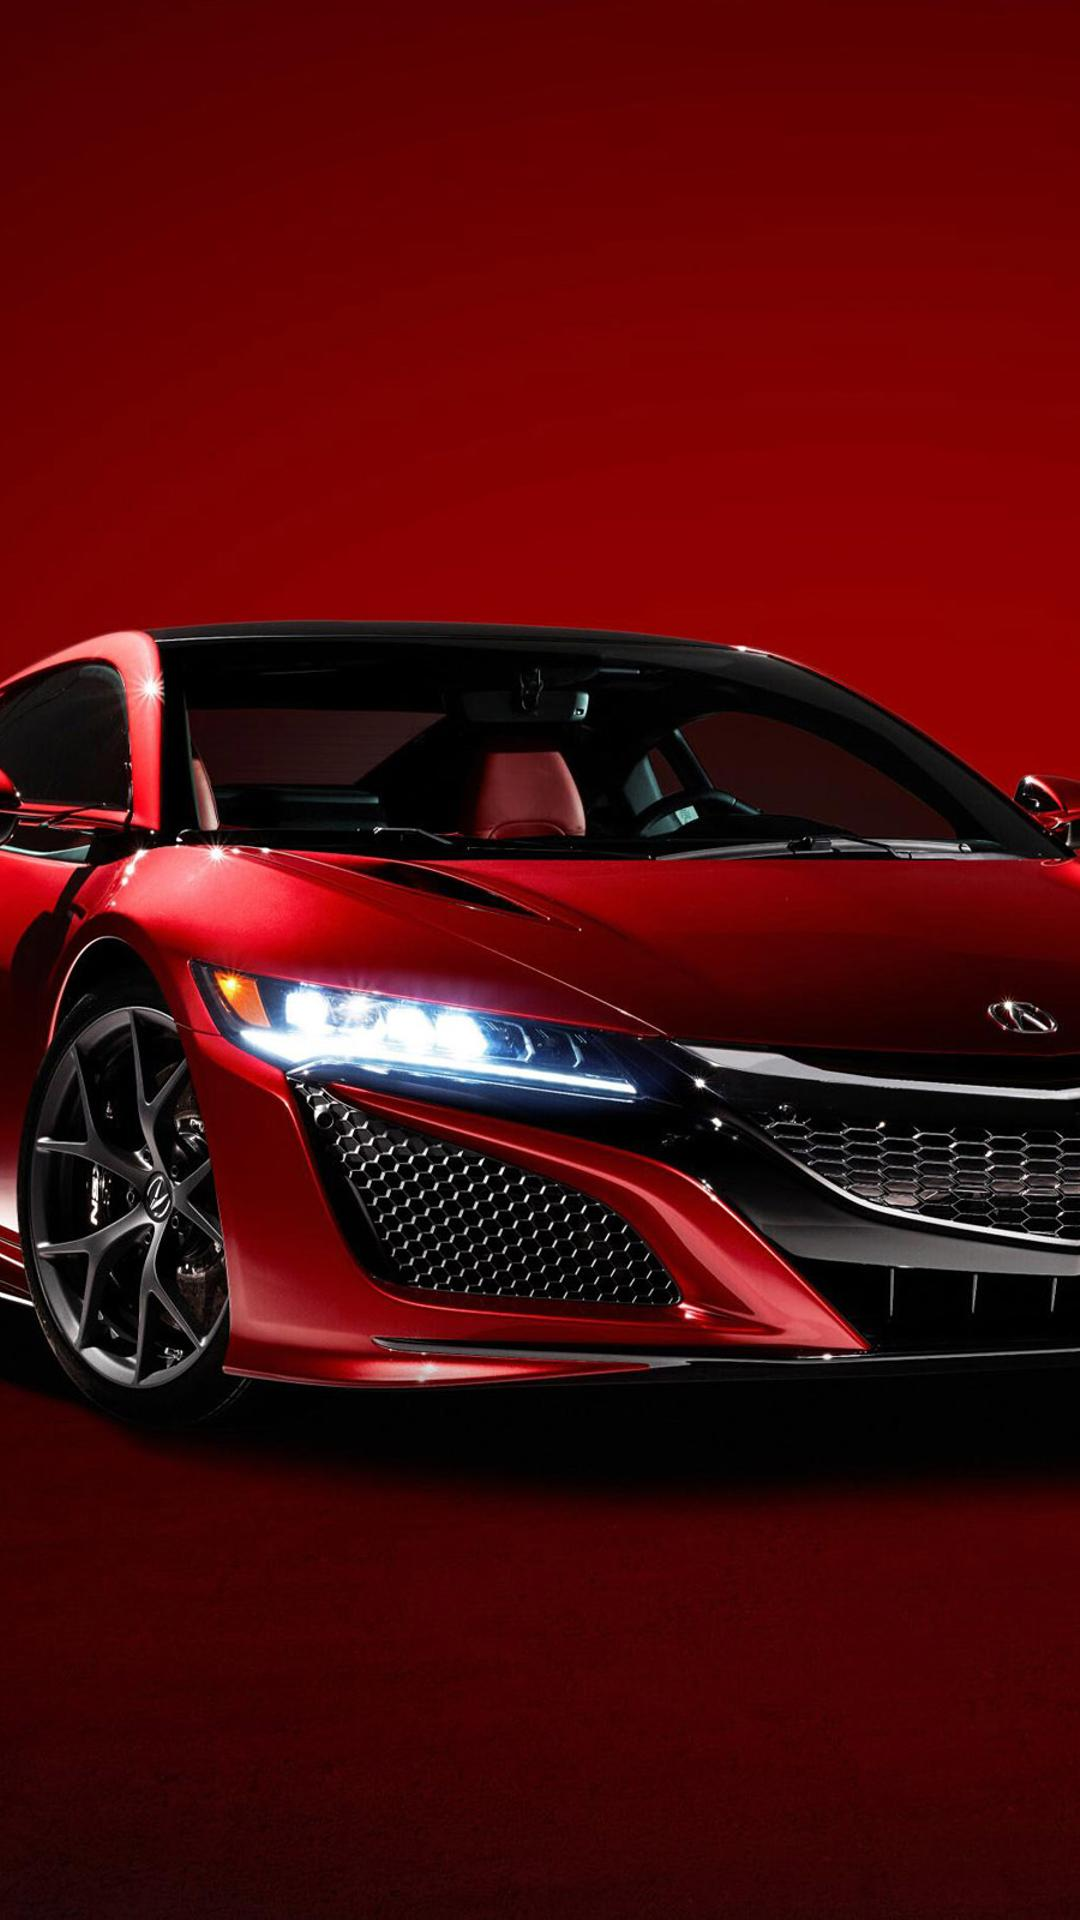 Red Supercar Acura NSX 2016 Wallpaper Download 1080x1920